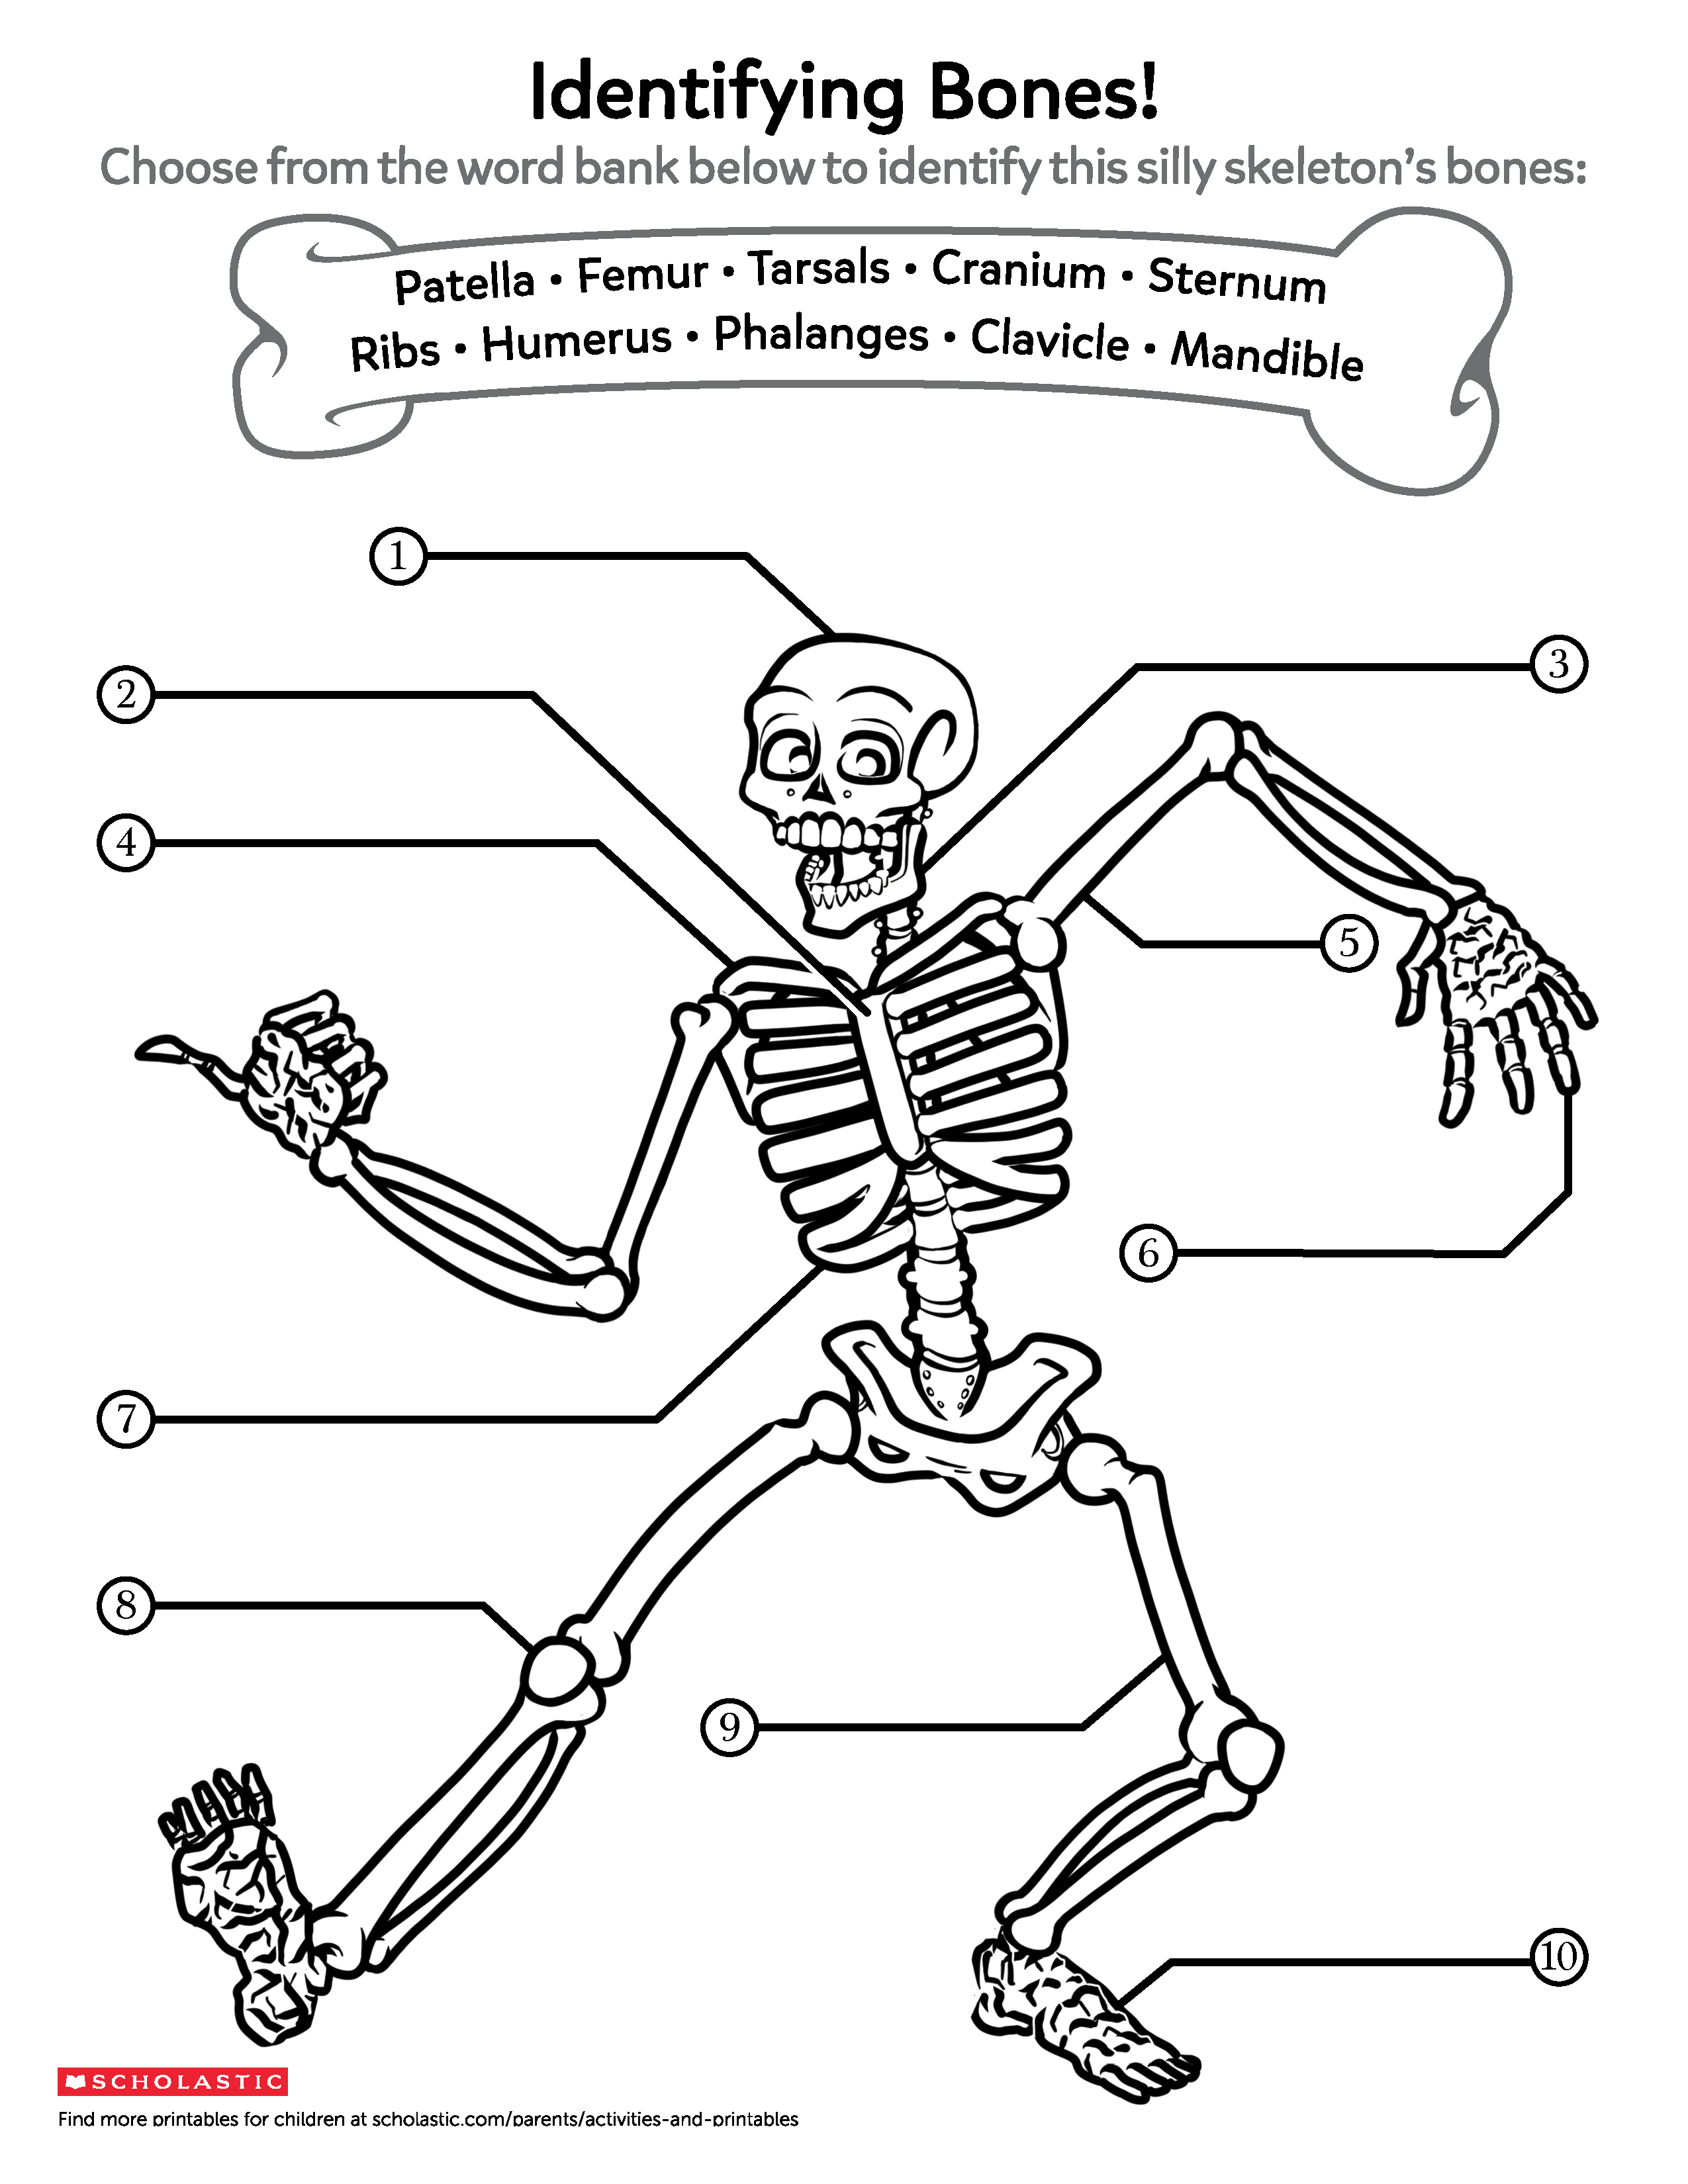 This is a graphic of Life Size Printable Skeleton intended for rib cage